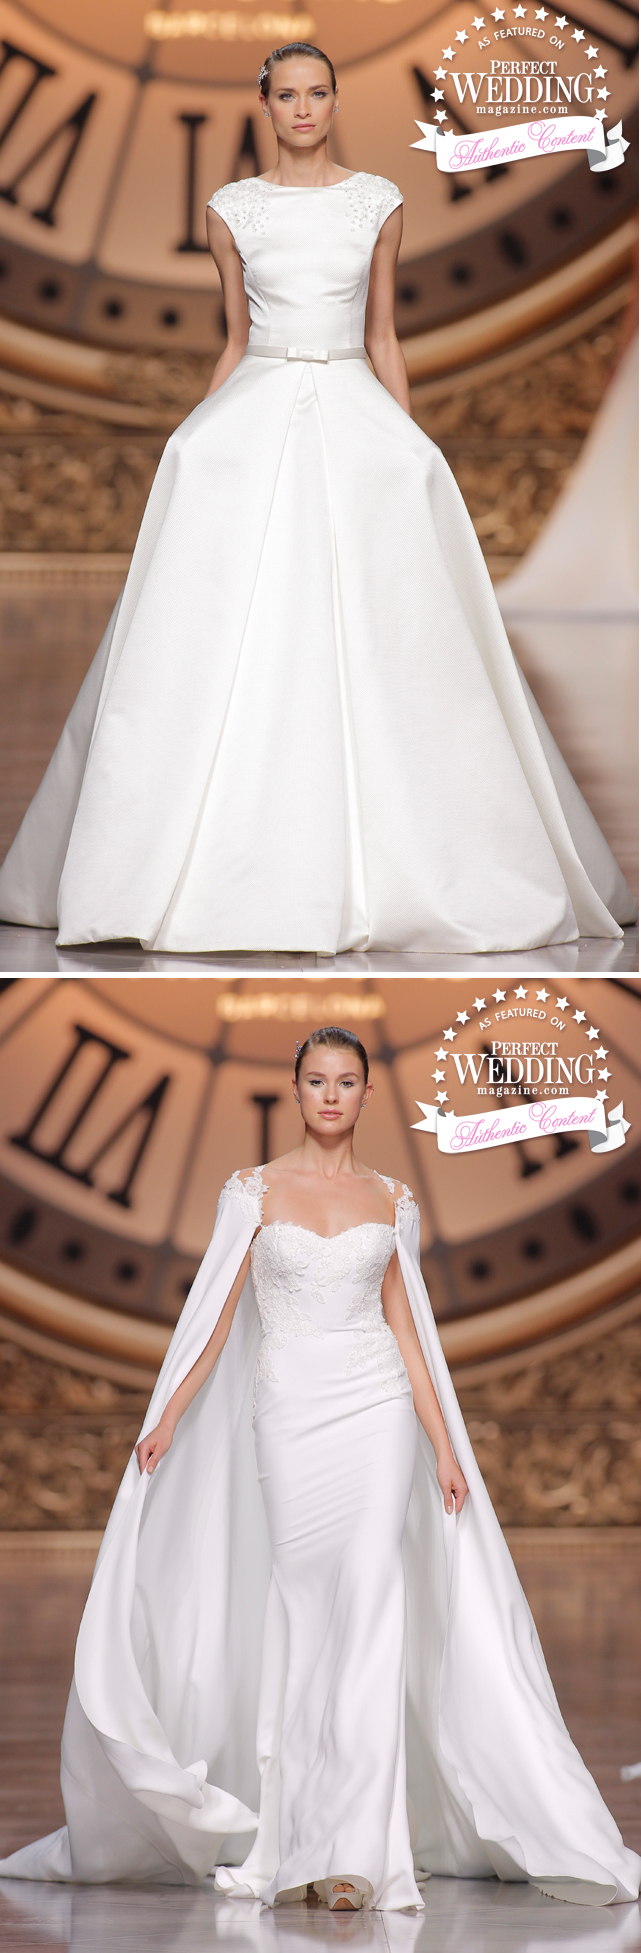 Pronovias, PRONOVIAS FASHION SHOW 2016,Pronovias Atelier 2016 Collection, Fashion, Bridal Trends, Perfect wedding Magazine